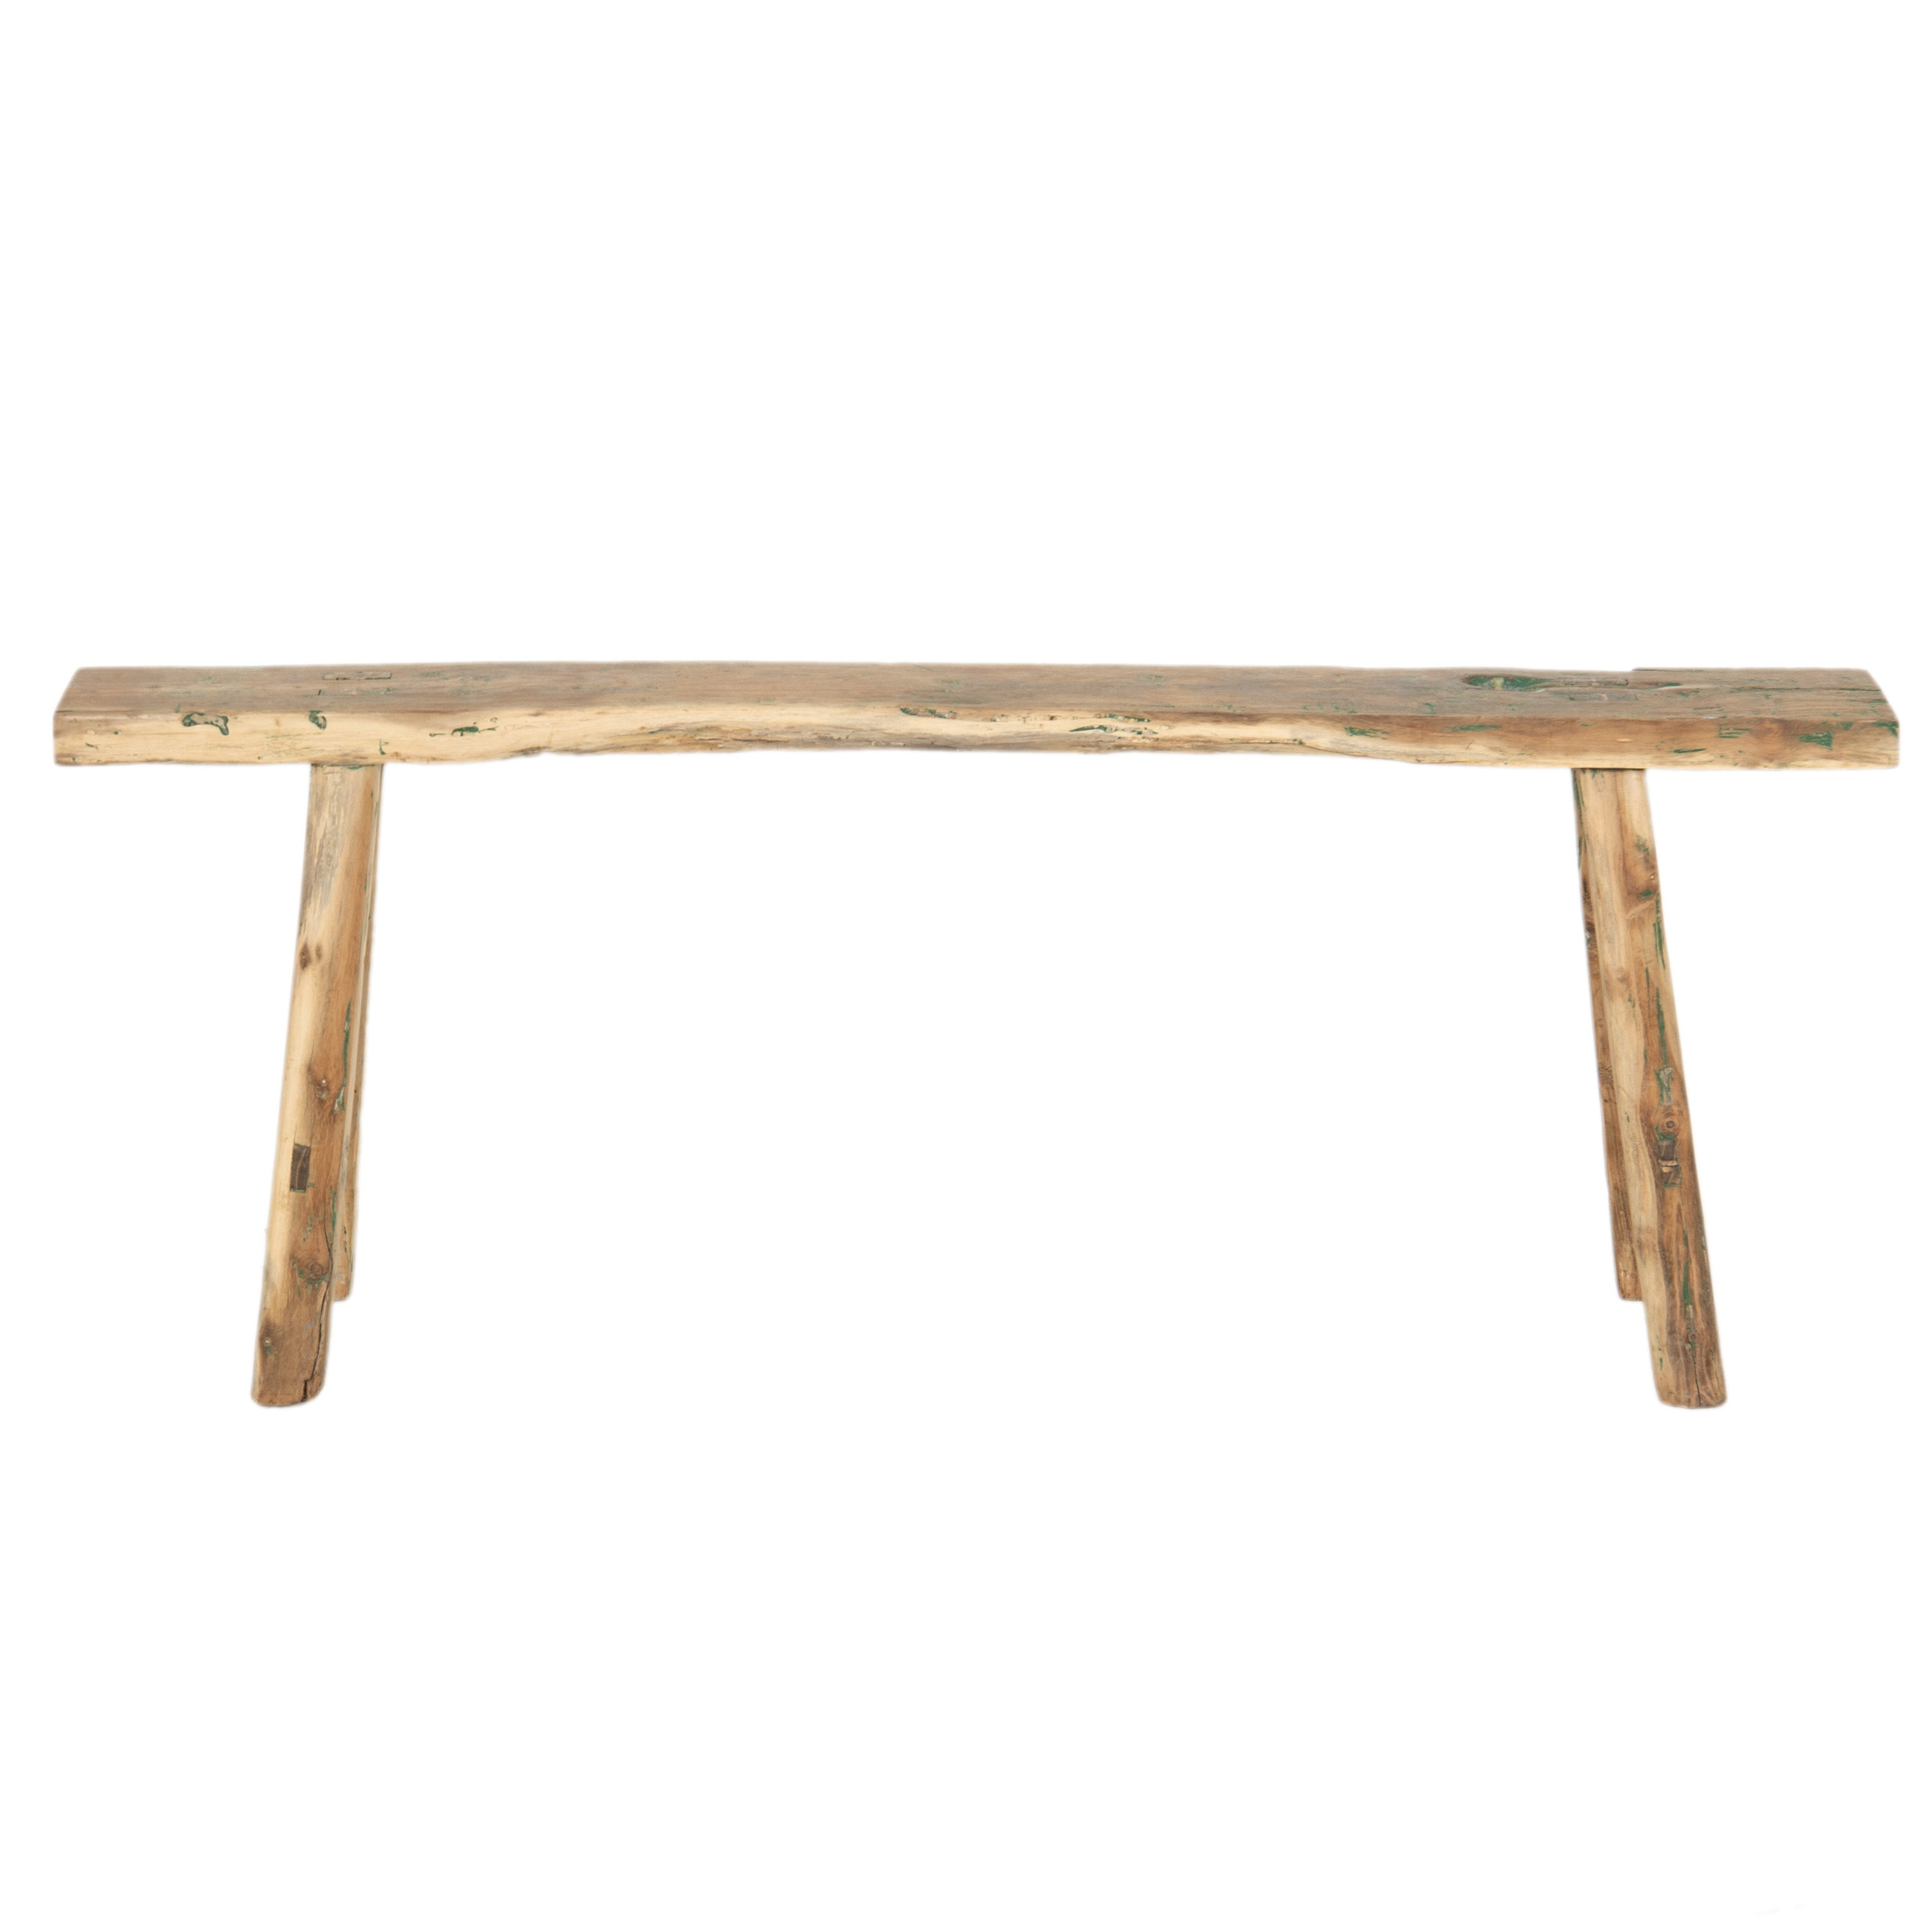 Mullens Bench #7